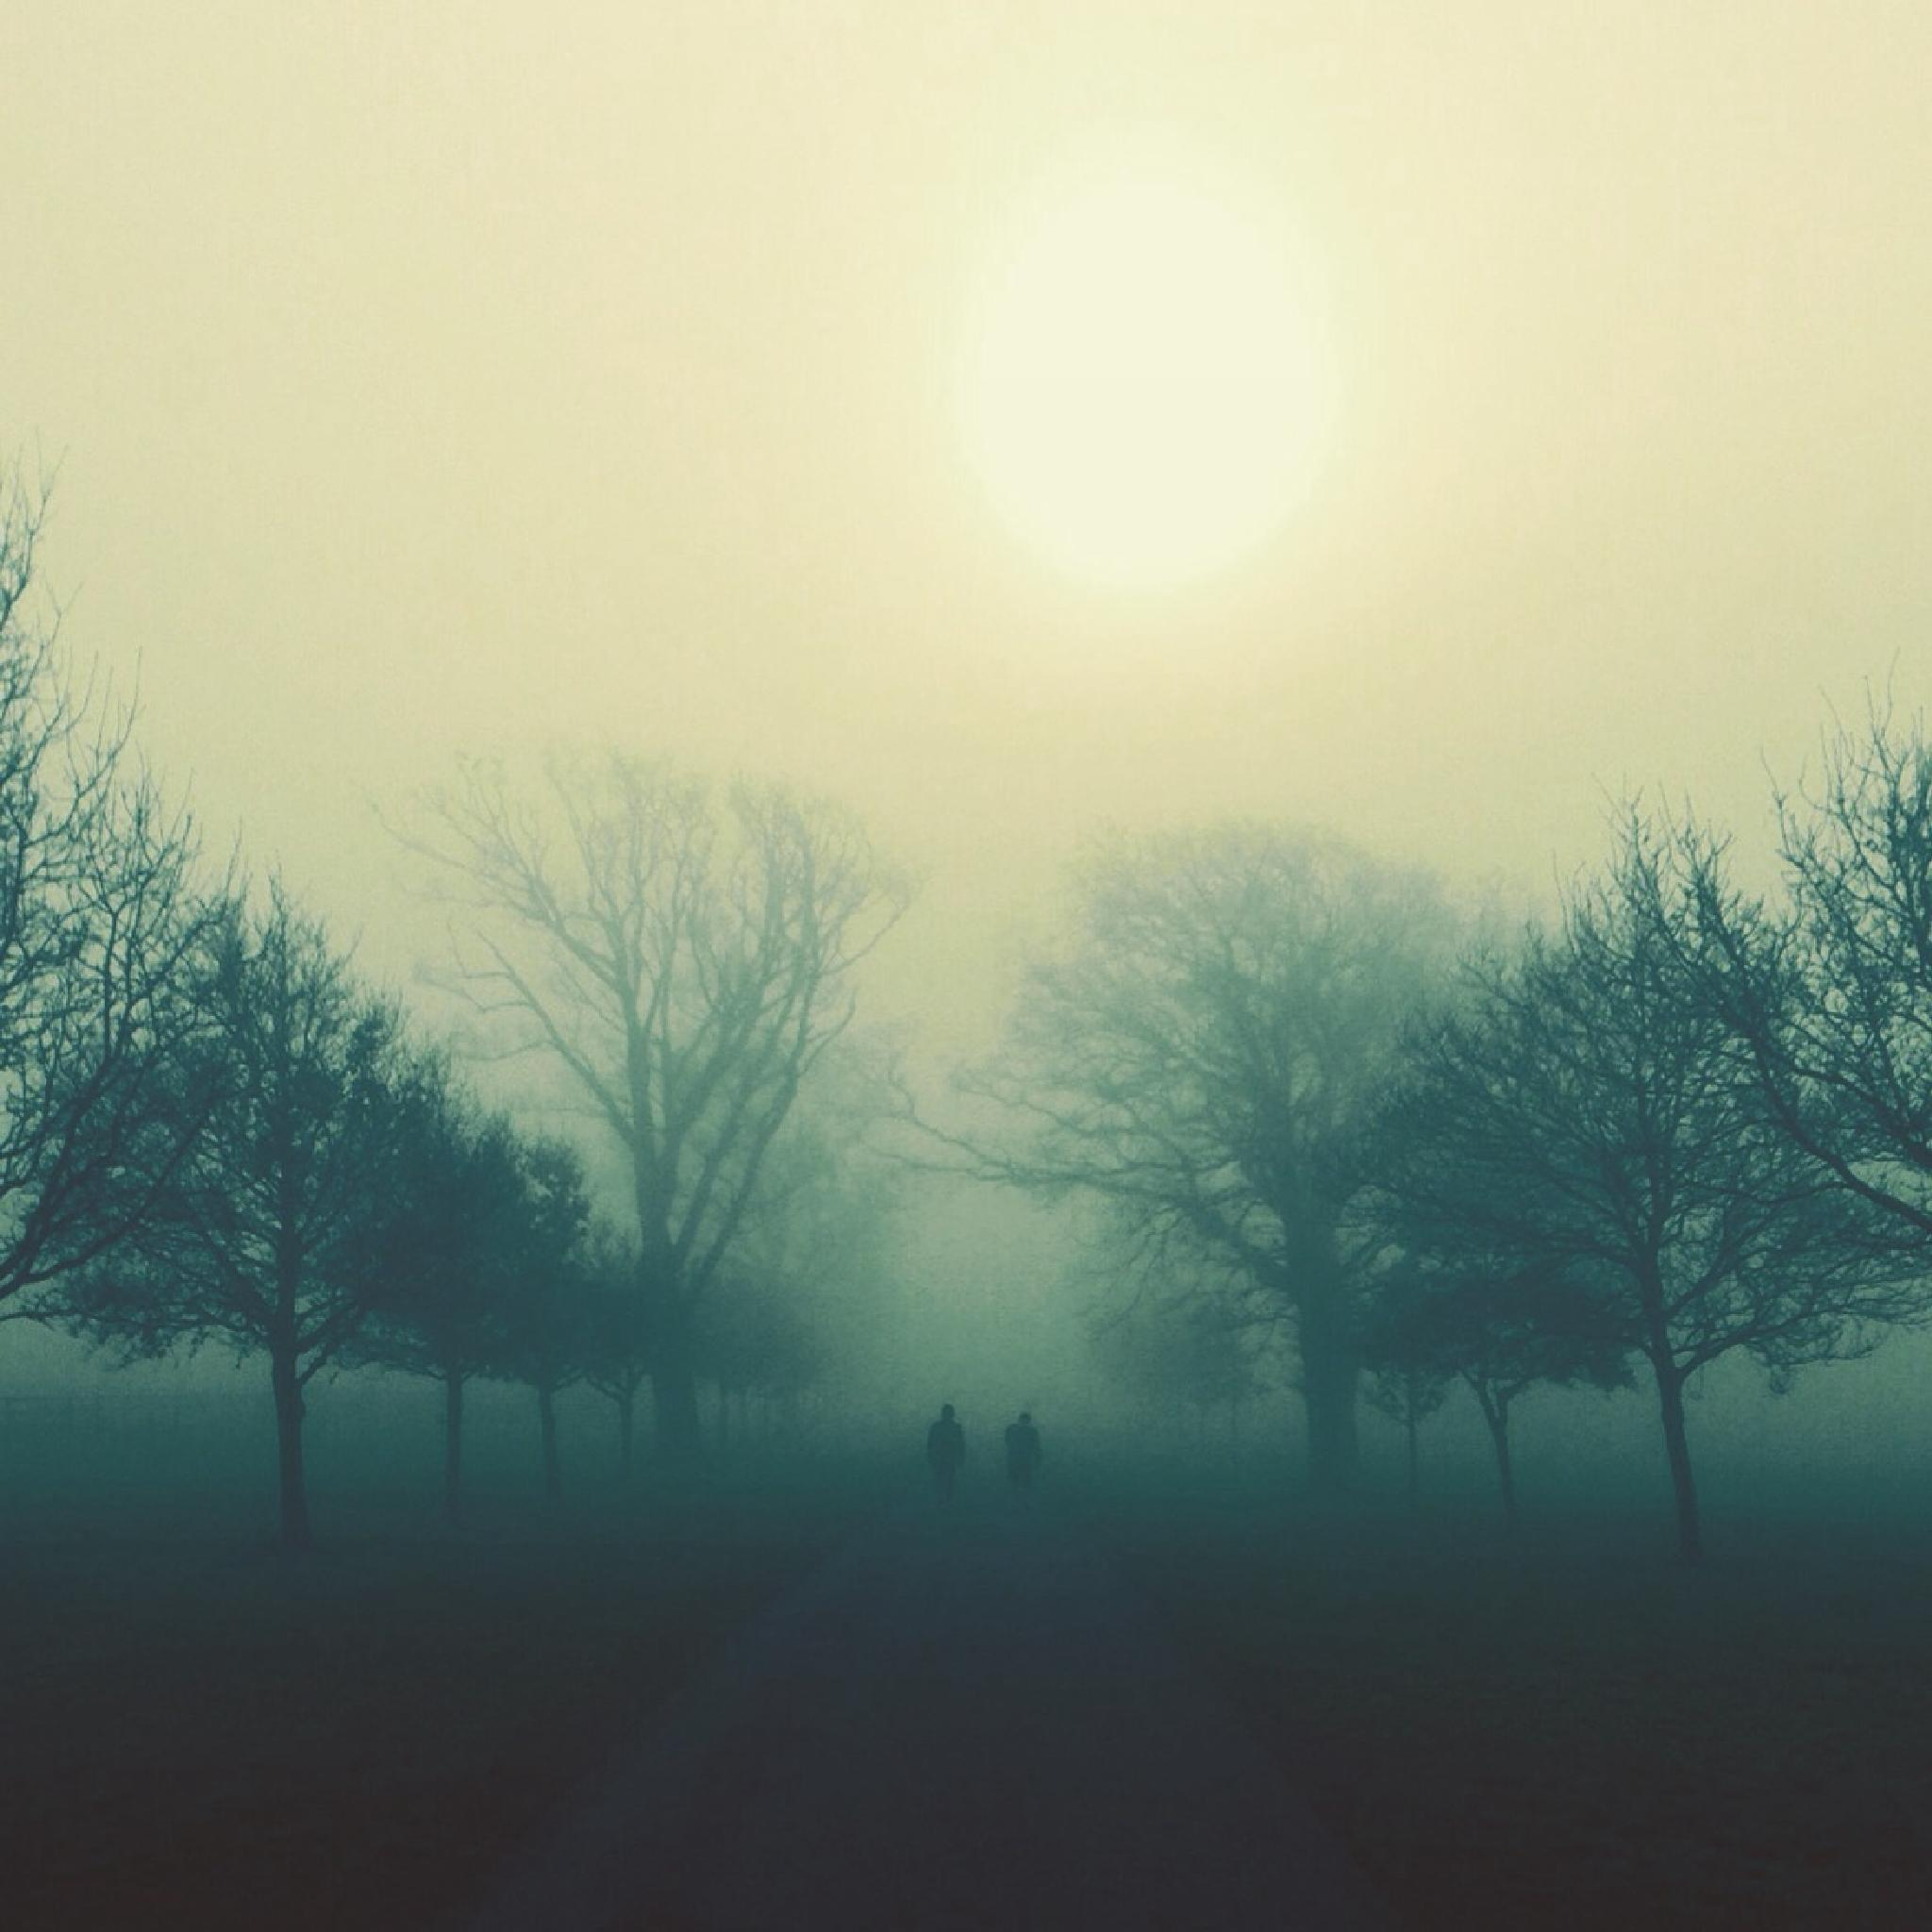 Early morning misty walk in the park by fionagill8639